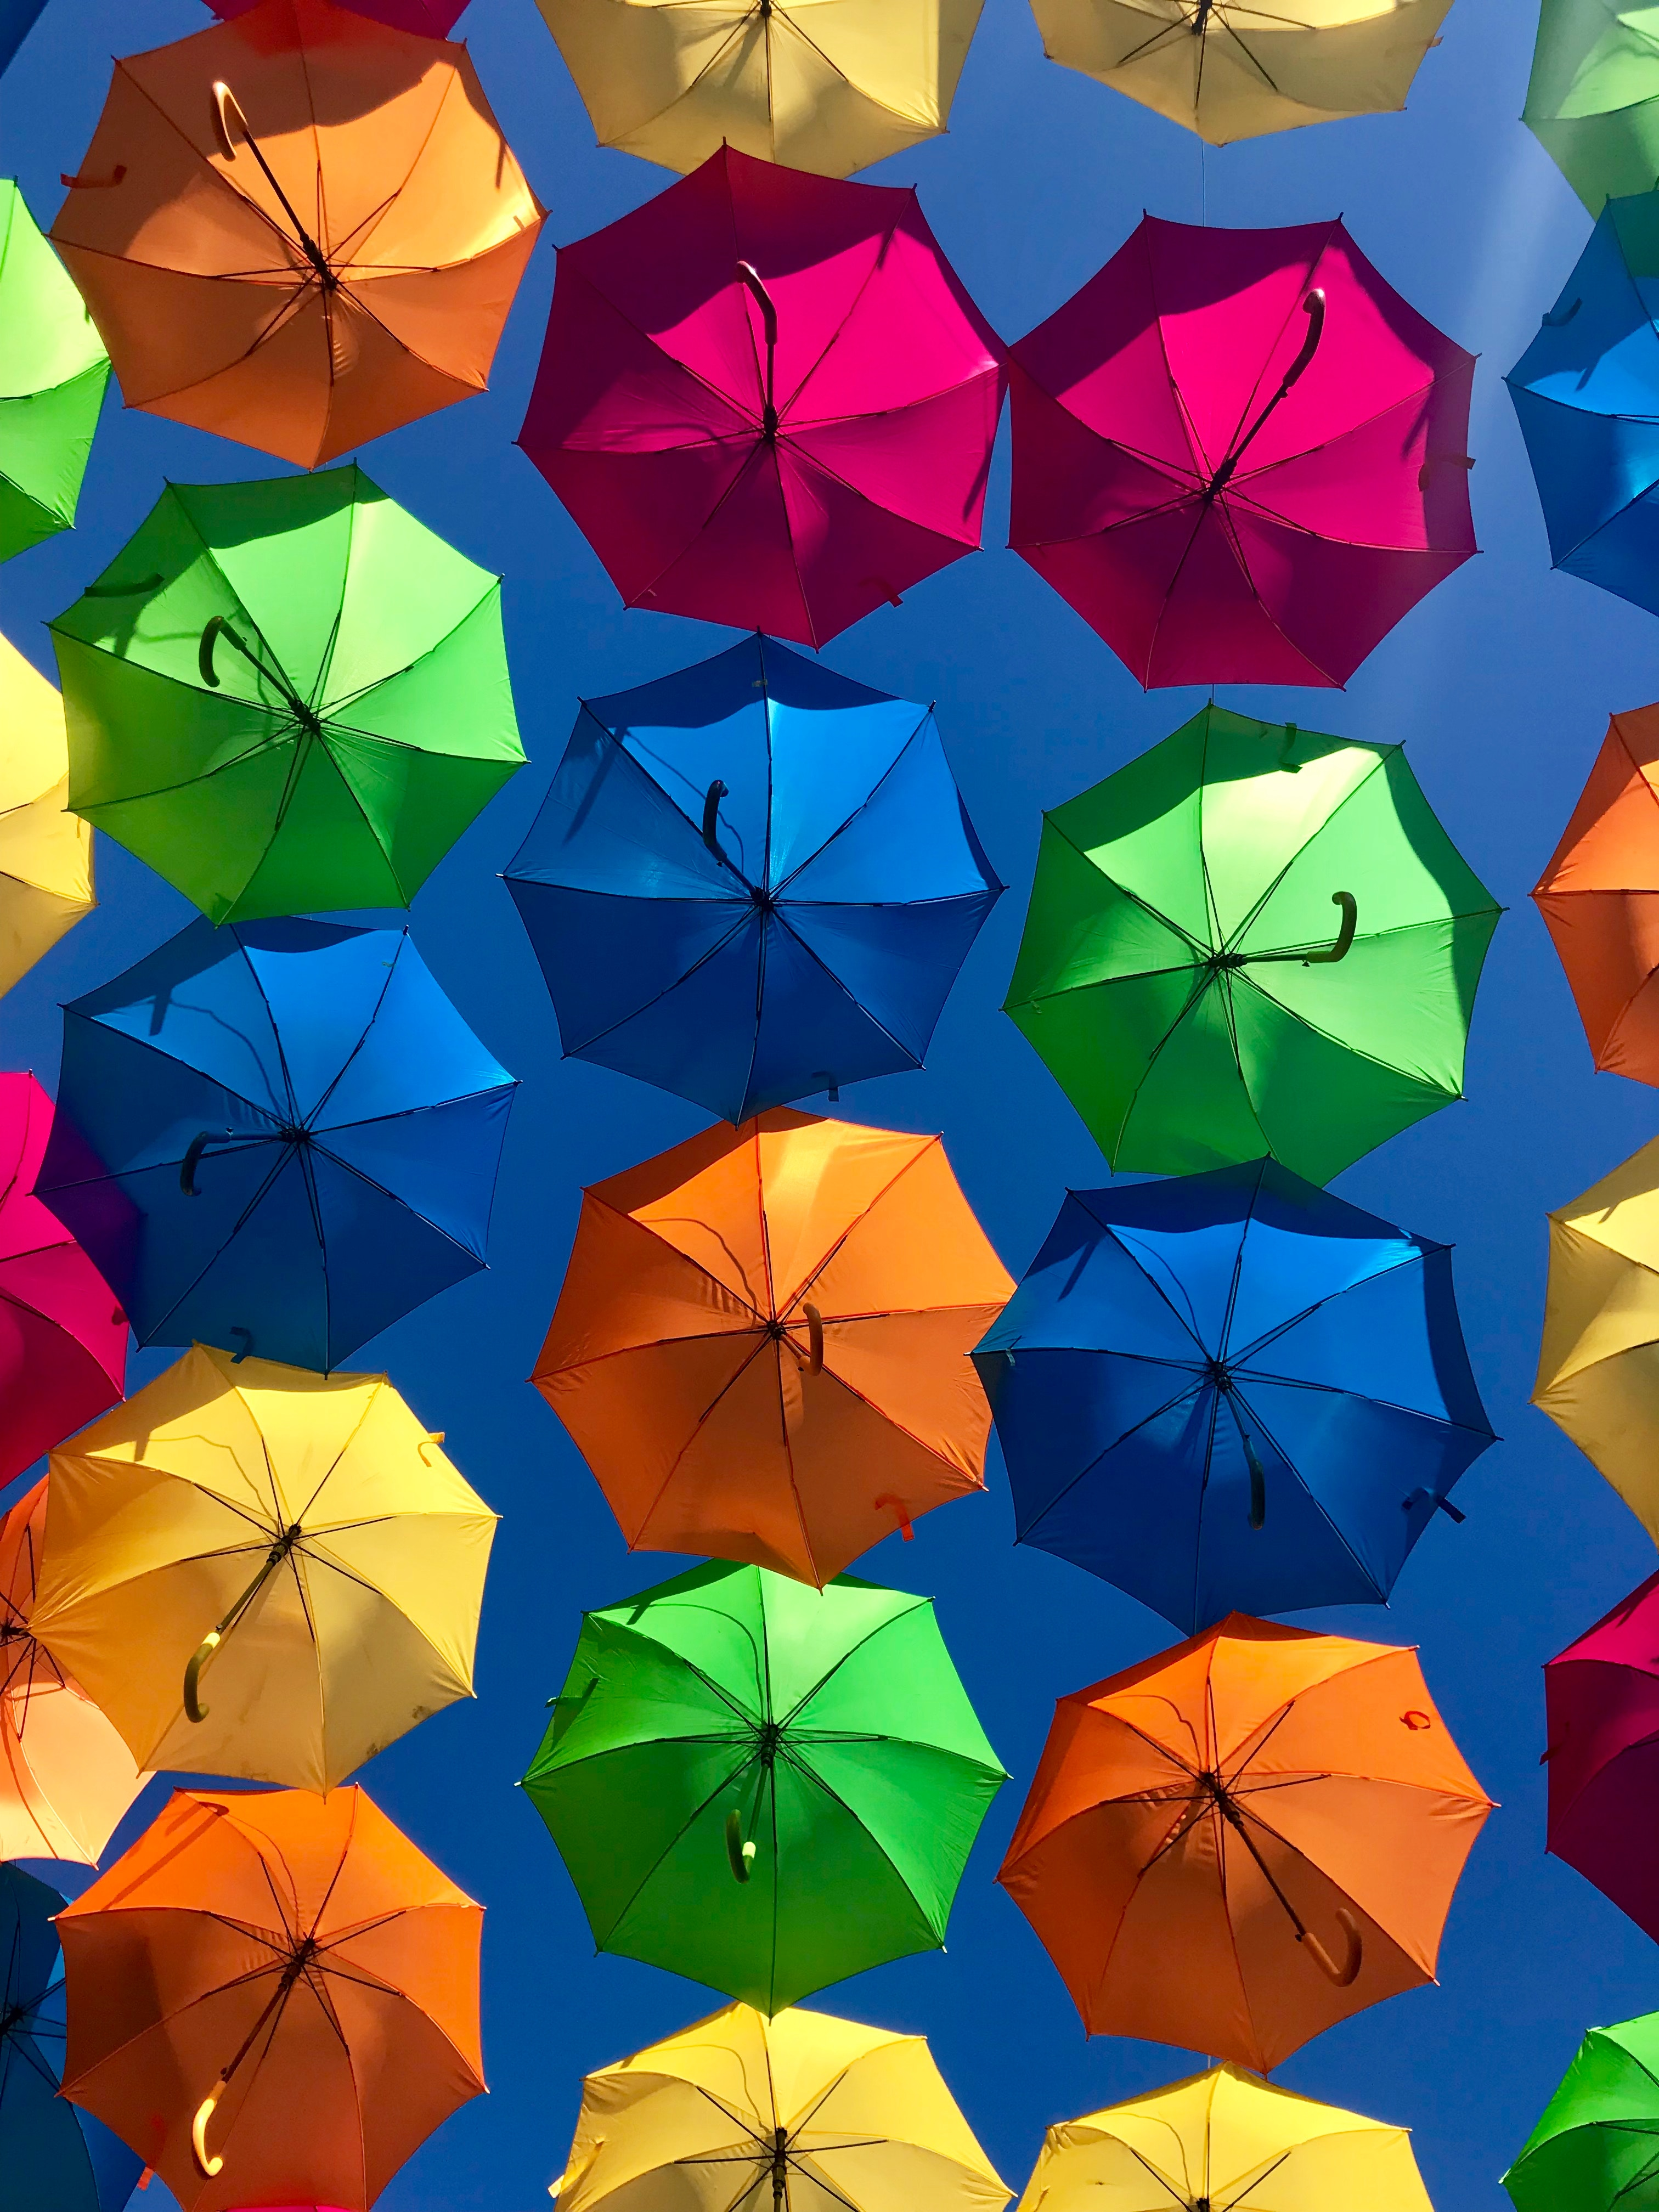 A photo of umbrellas in the sun by Xiao Sun on Unsplash